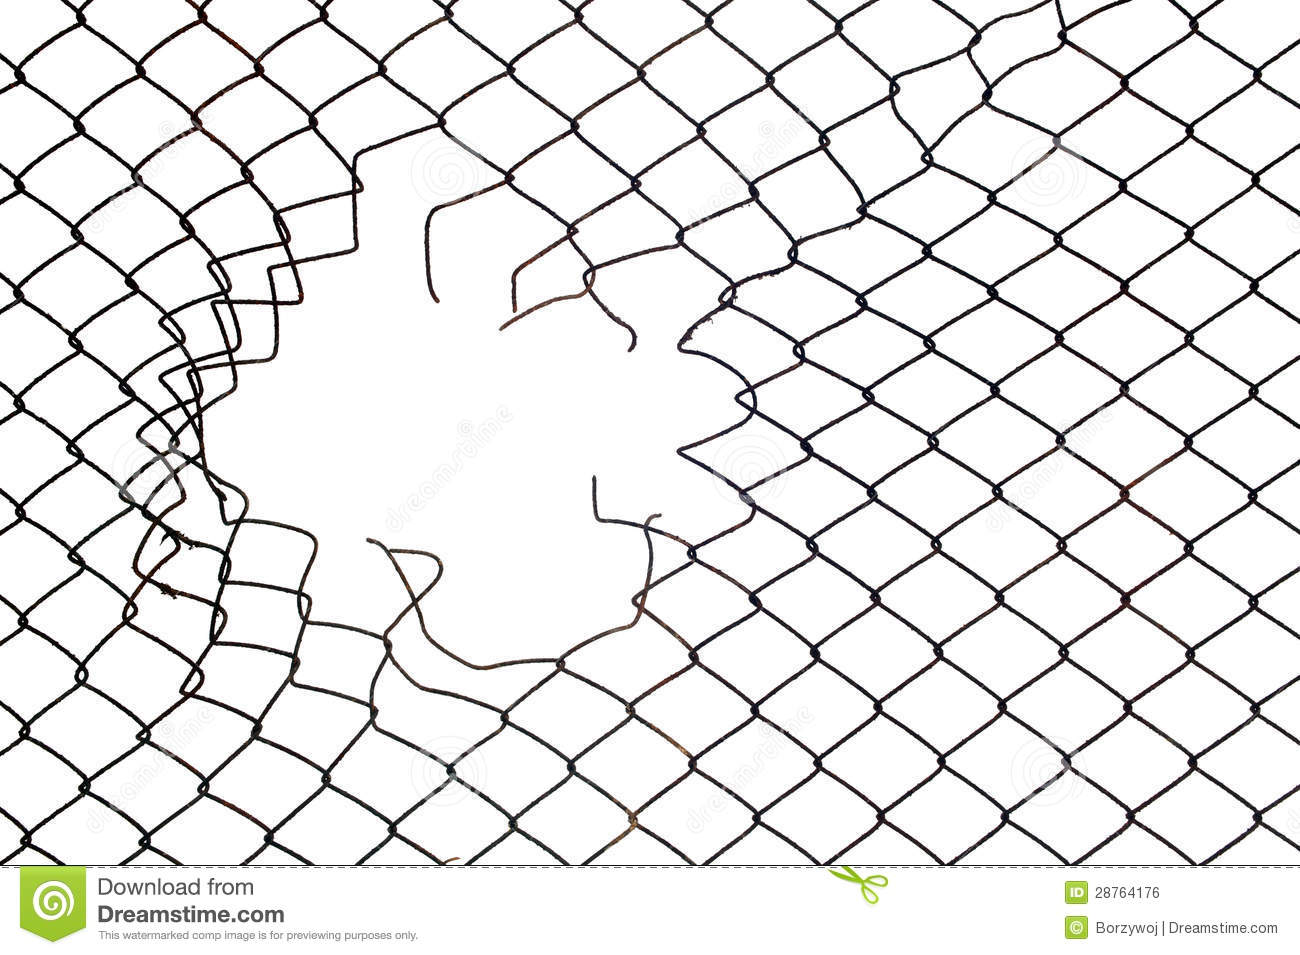 Mesh wire hole stock photo. Image of breach, rust, cage - 28764176